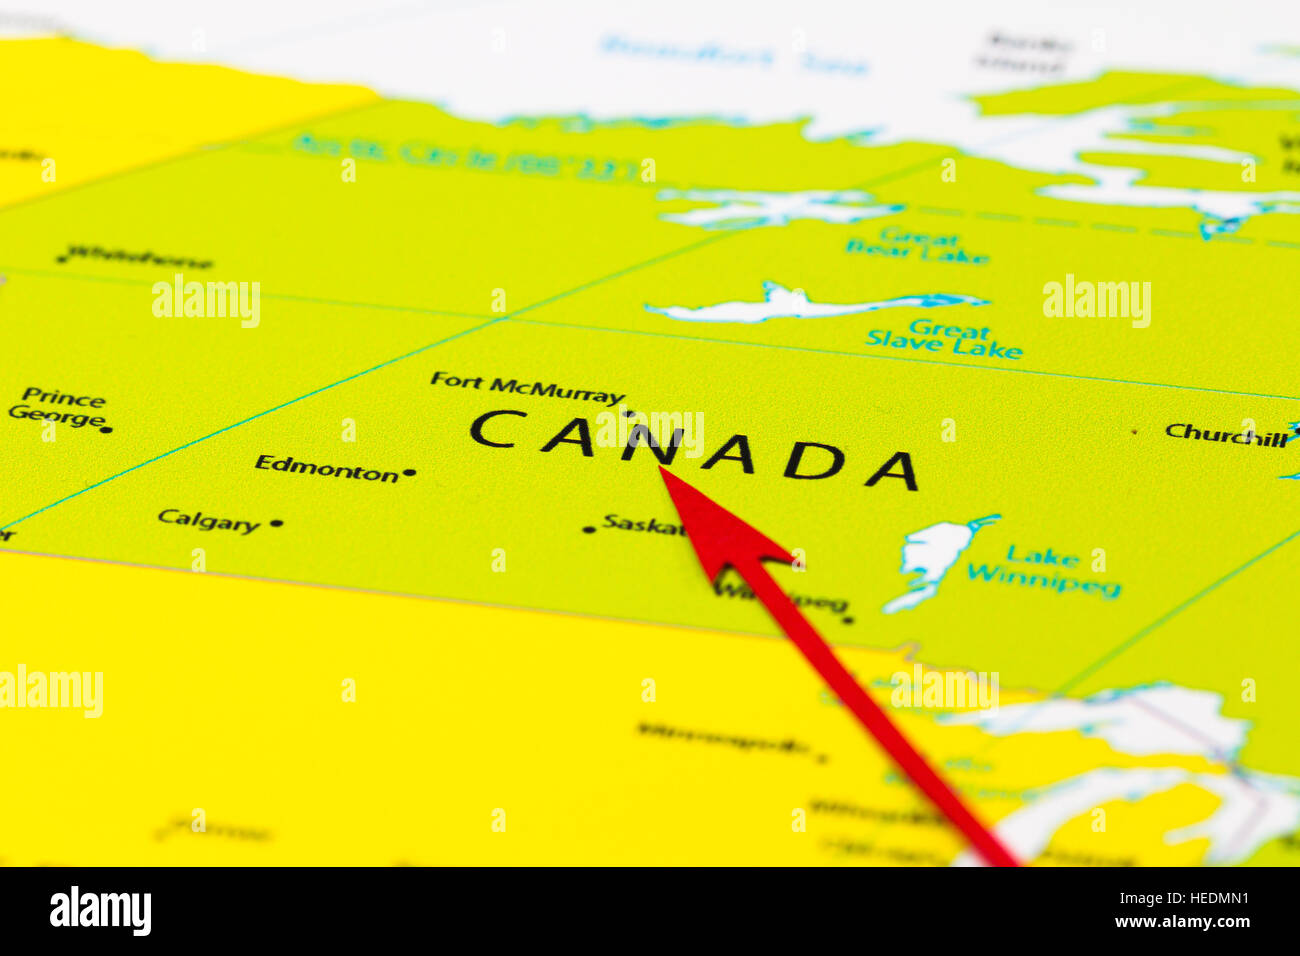 Red Arrow Pointing Canada On The Map Of North America Continent - Canada on a map